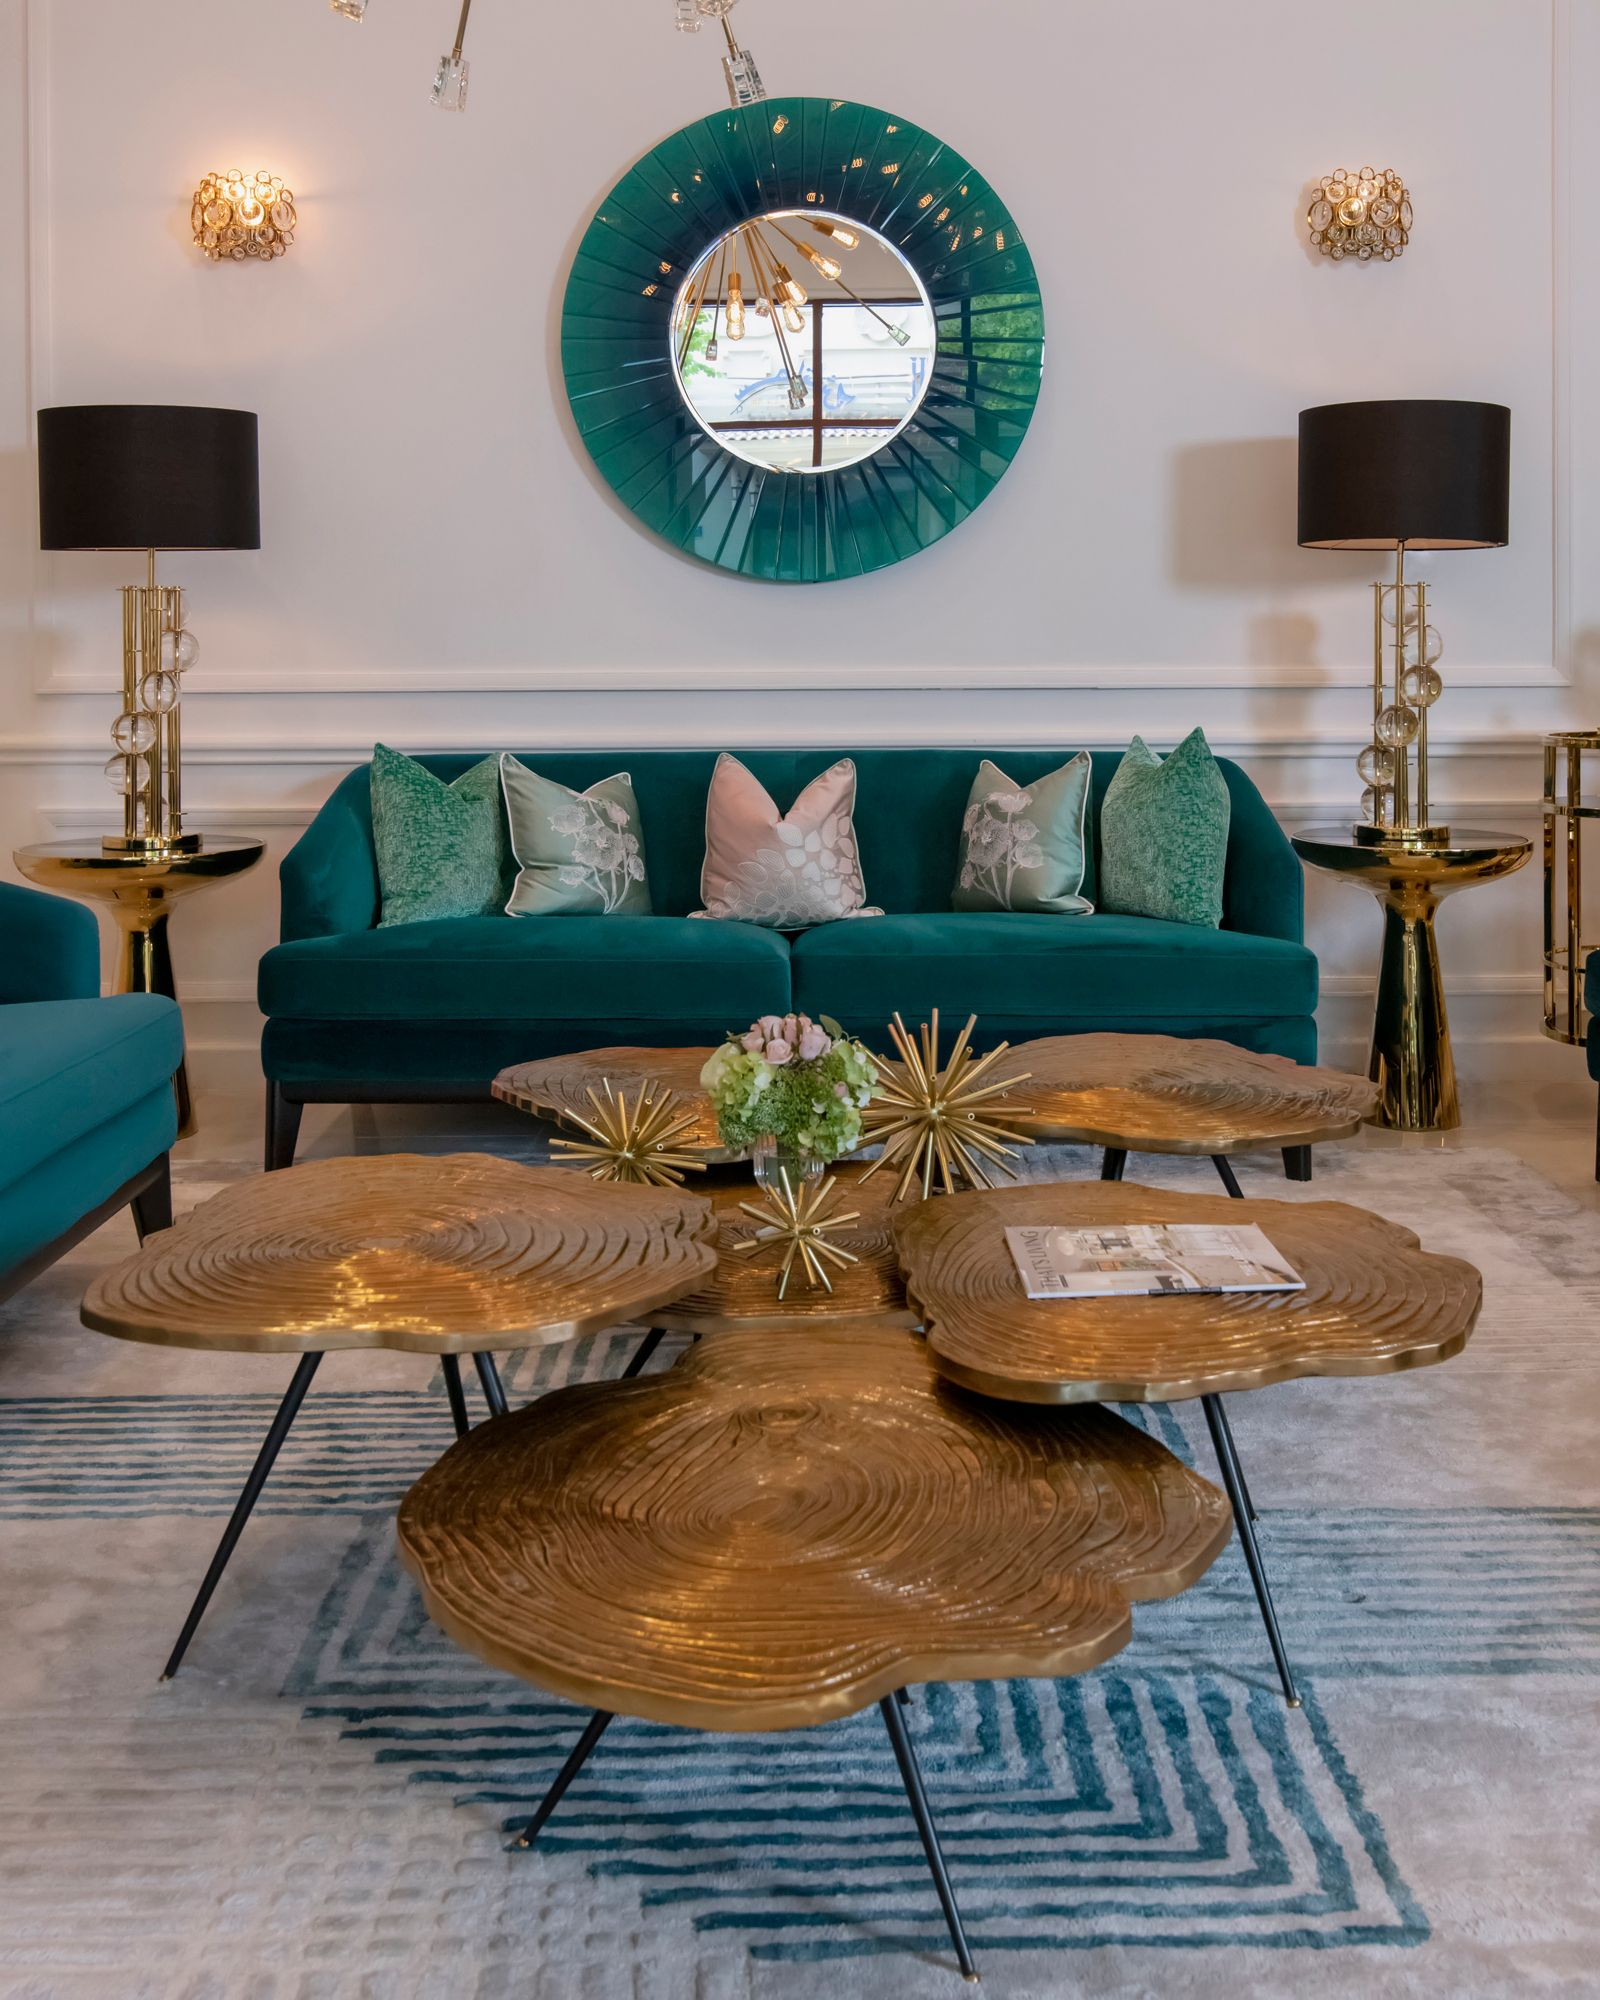 This Living Room Mixes Smart Furniture World Class Craftsmanship And Handpicks Items To Bowl Your Guests Over V Luxury Furniture Unique Home Decor Home Decor